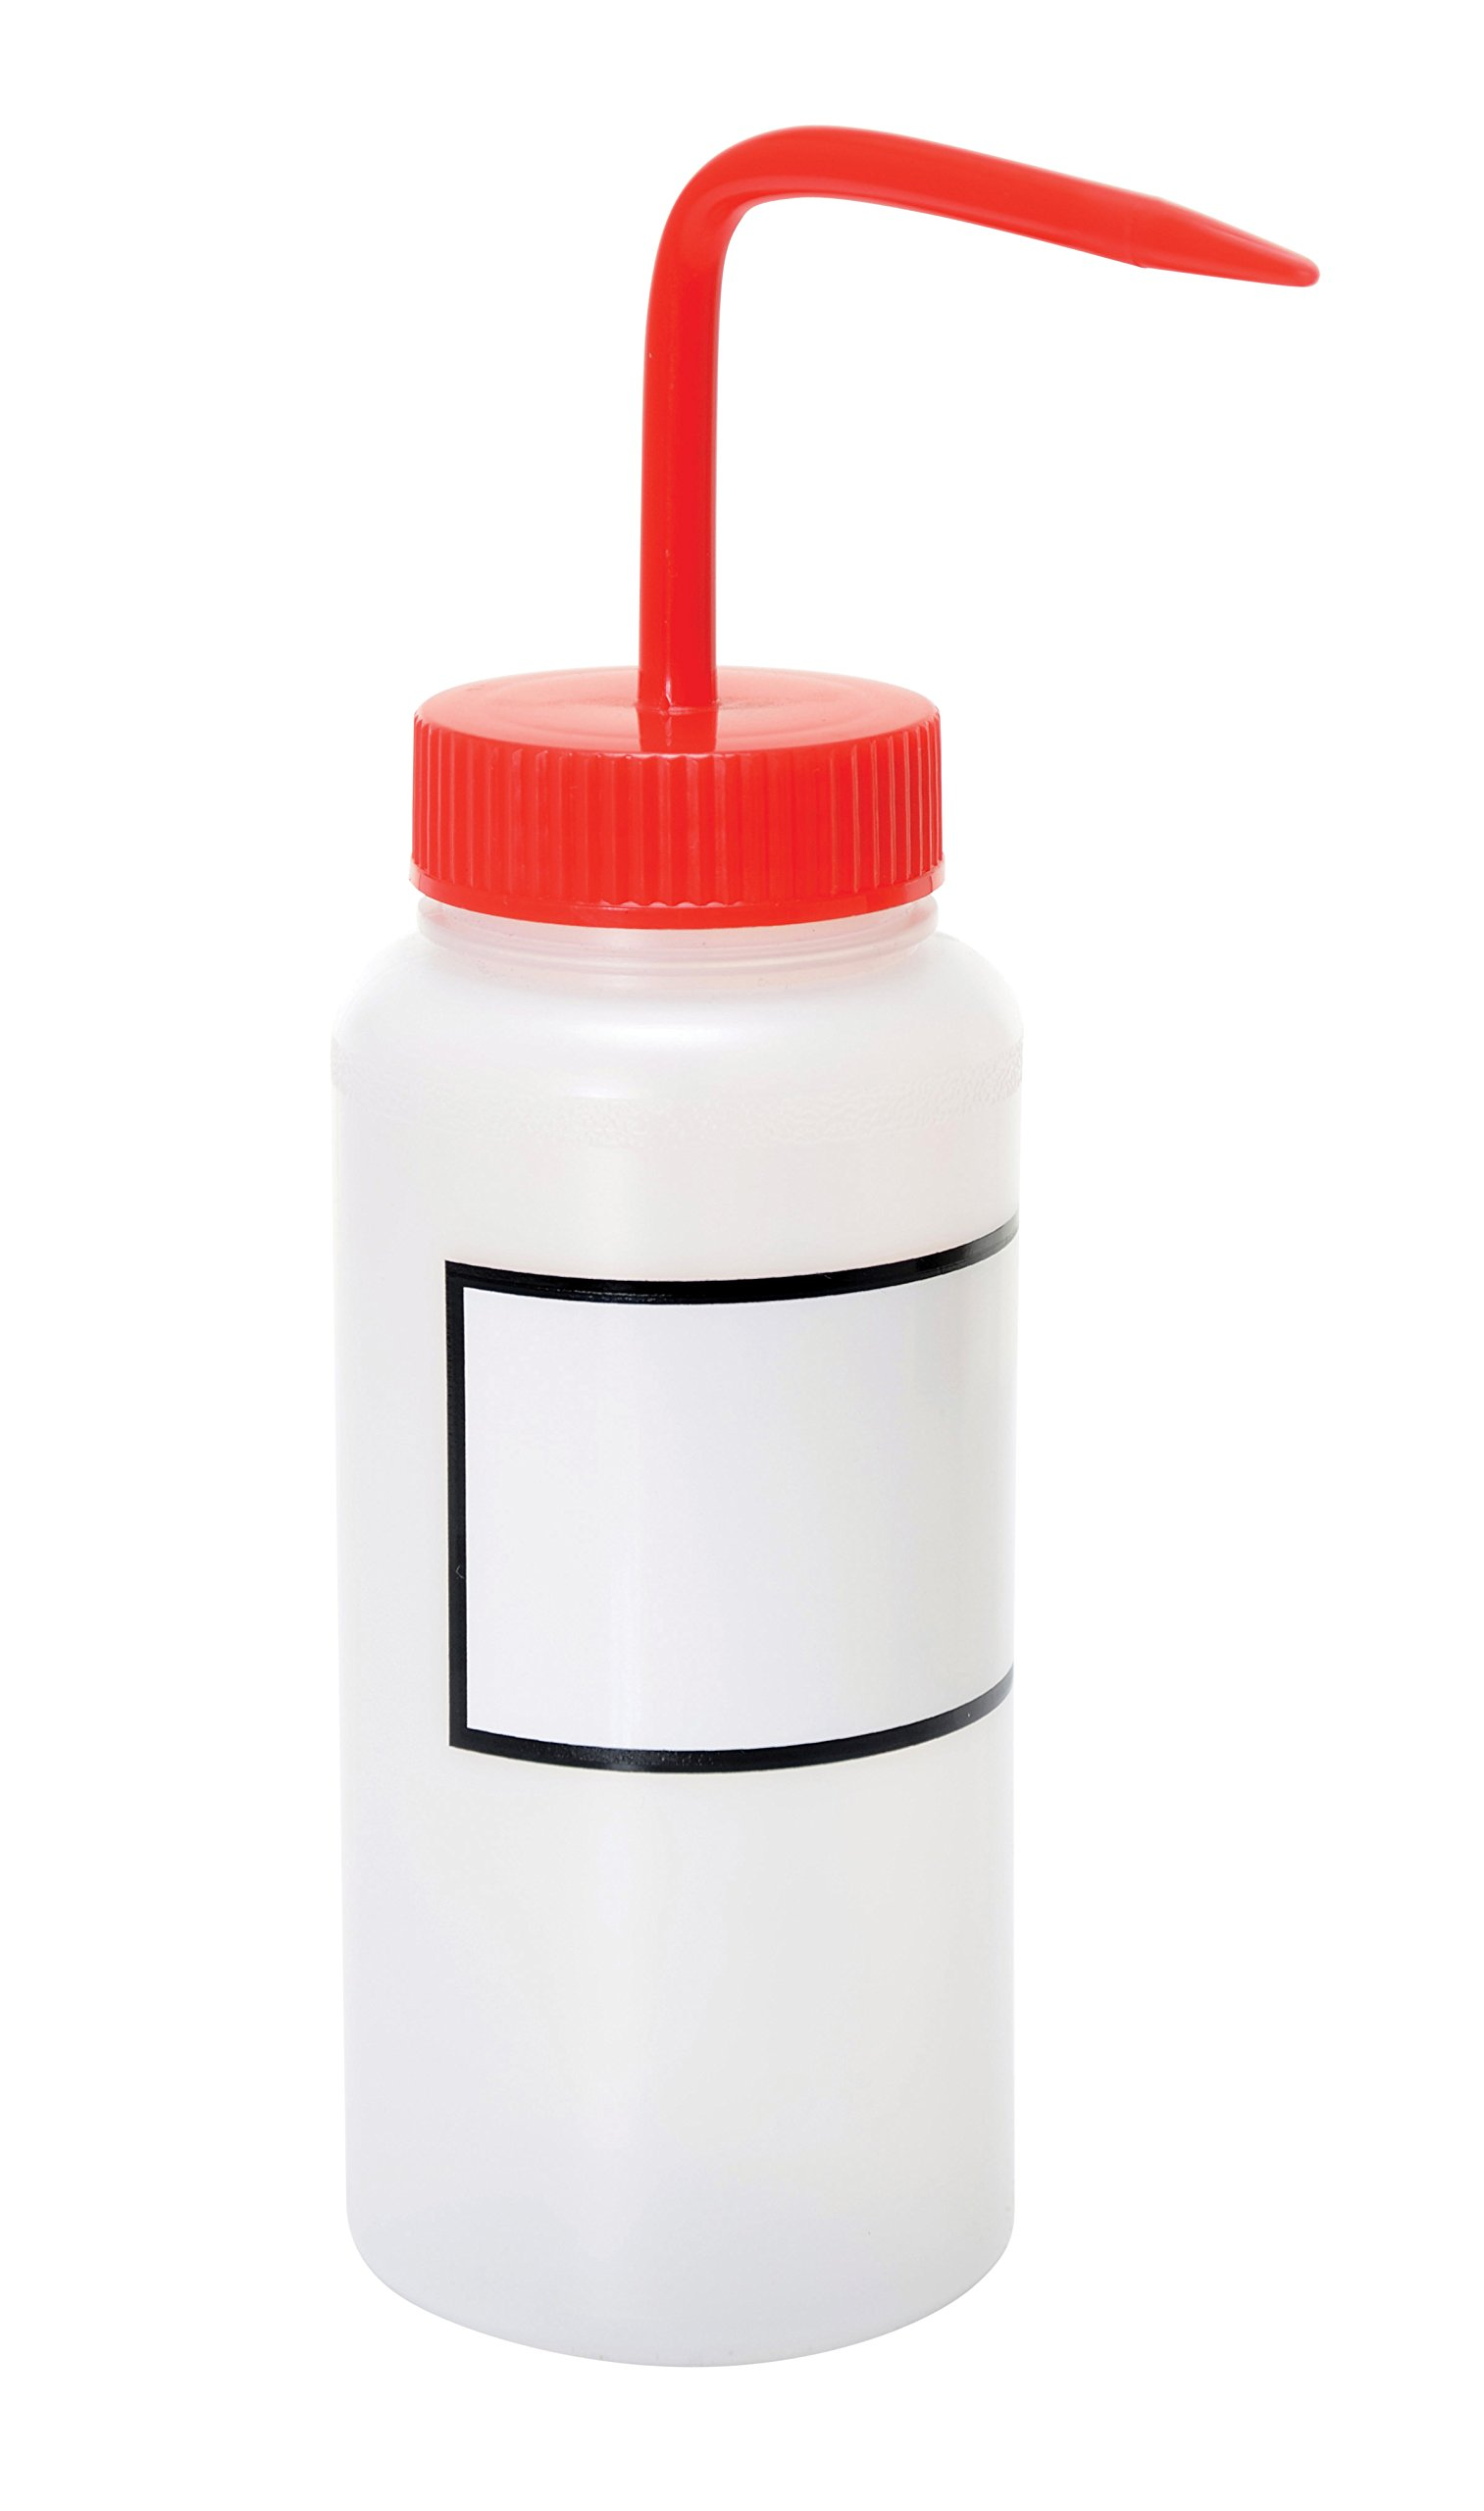 Vestil BTL-WW-16R-LBL Wide Mouth Low Density Polyethylene (LDPE) Round Squeeze Wash Bottle with Label and Red Cap, 16 oz Capacity, Translucent